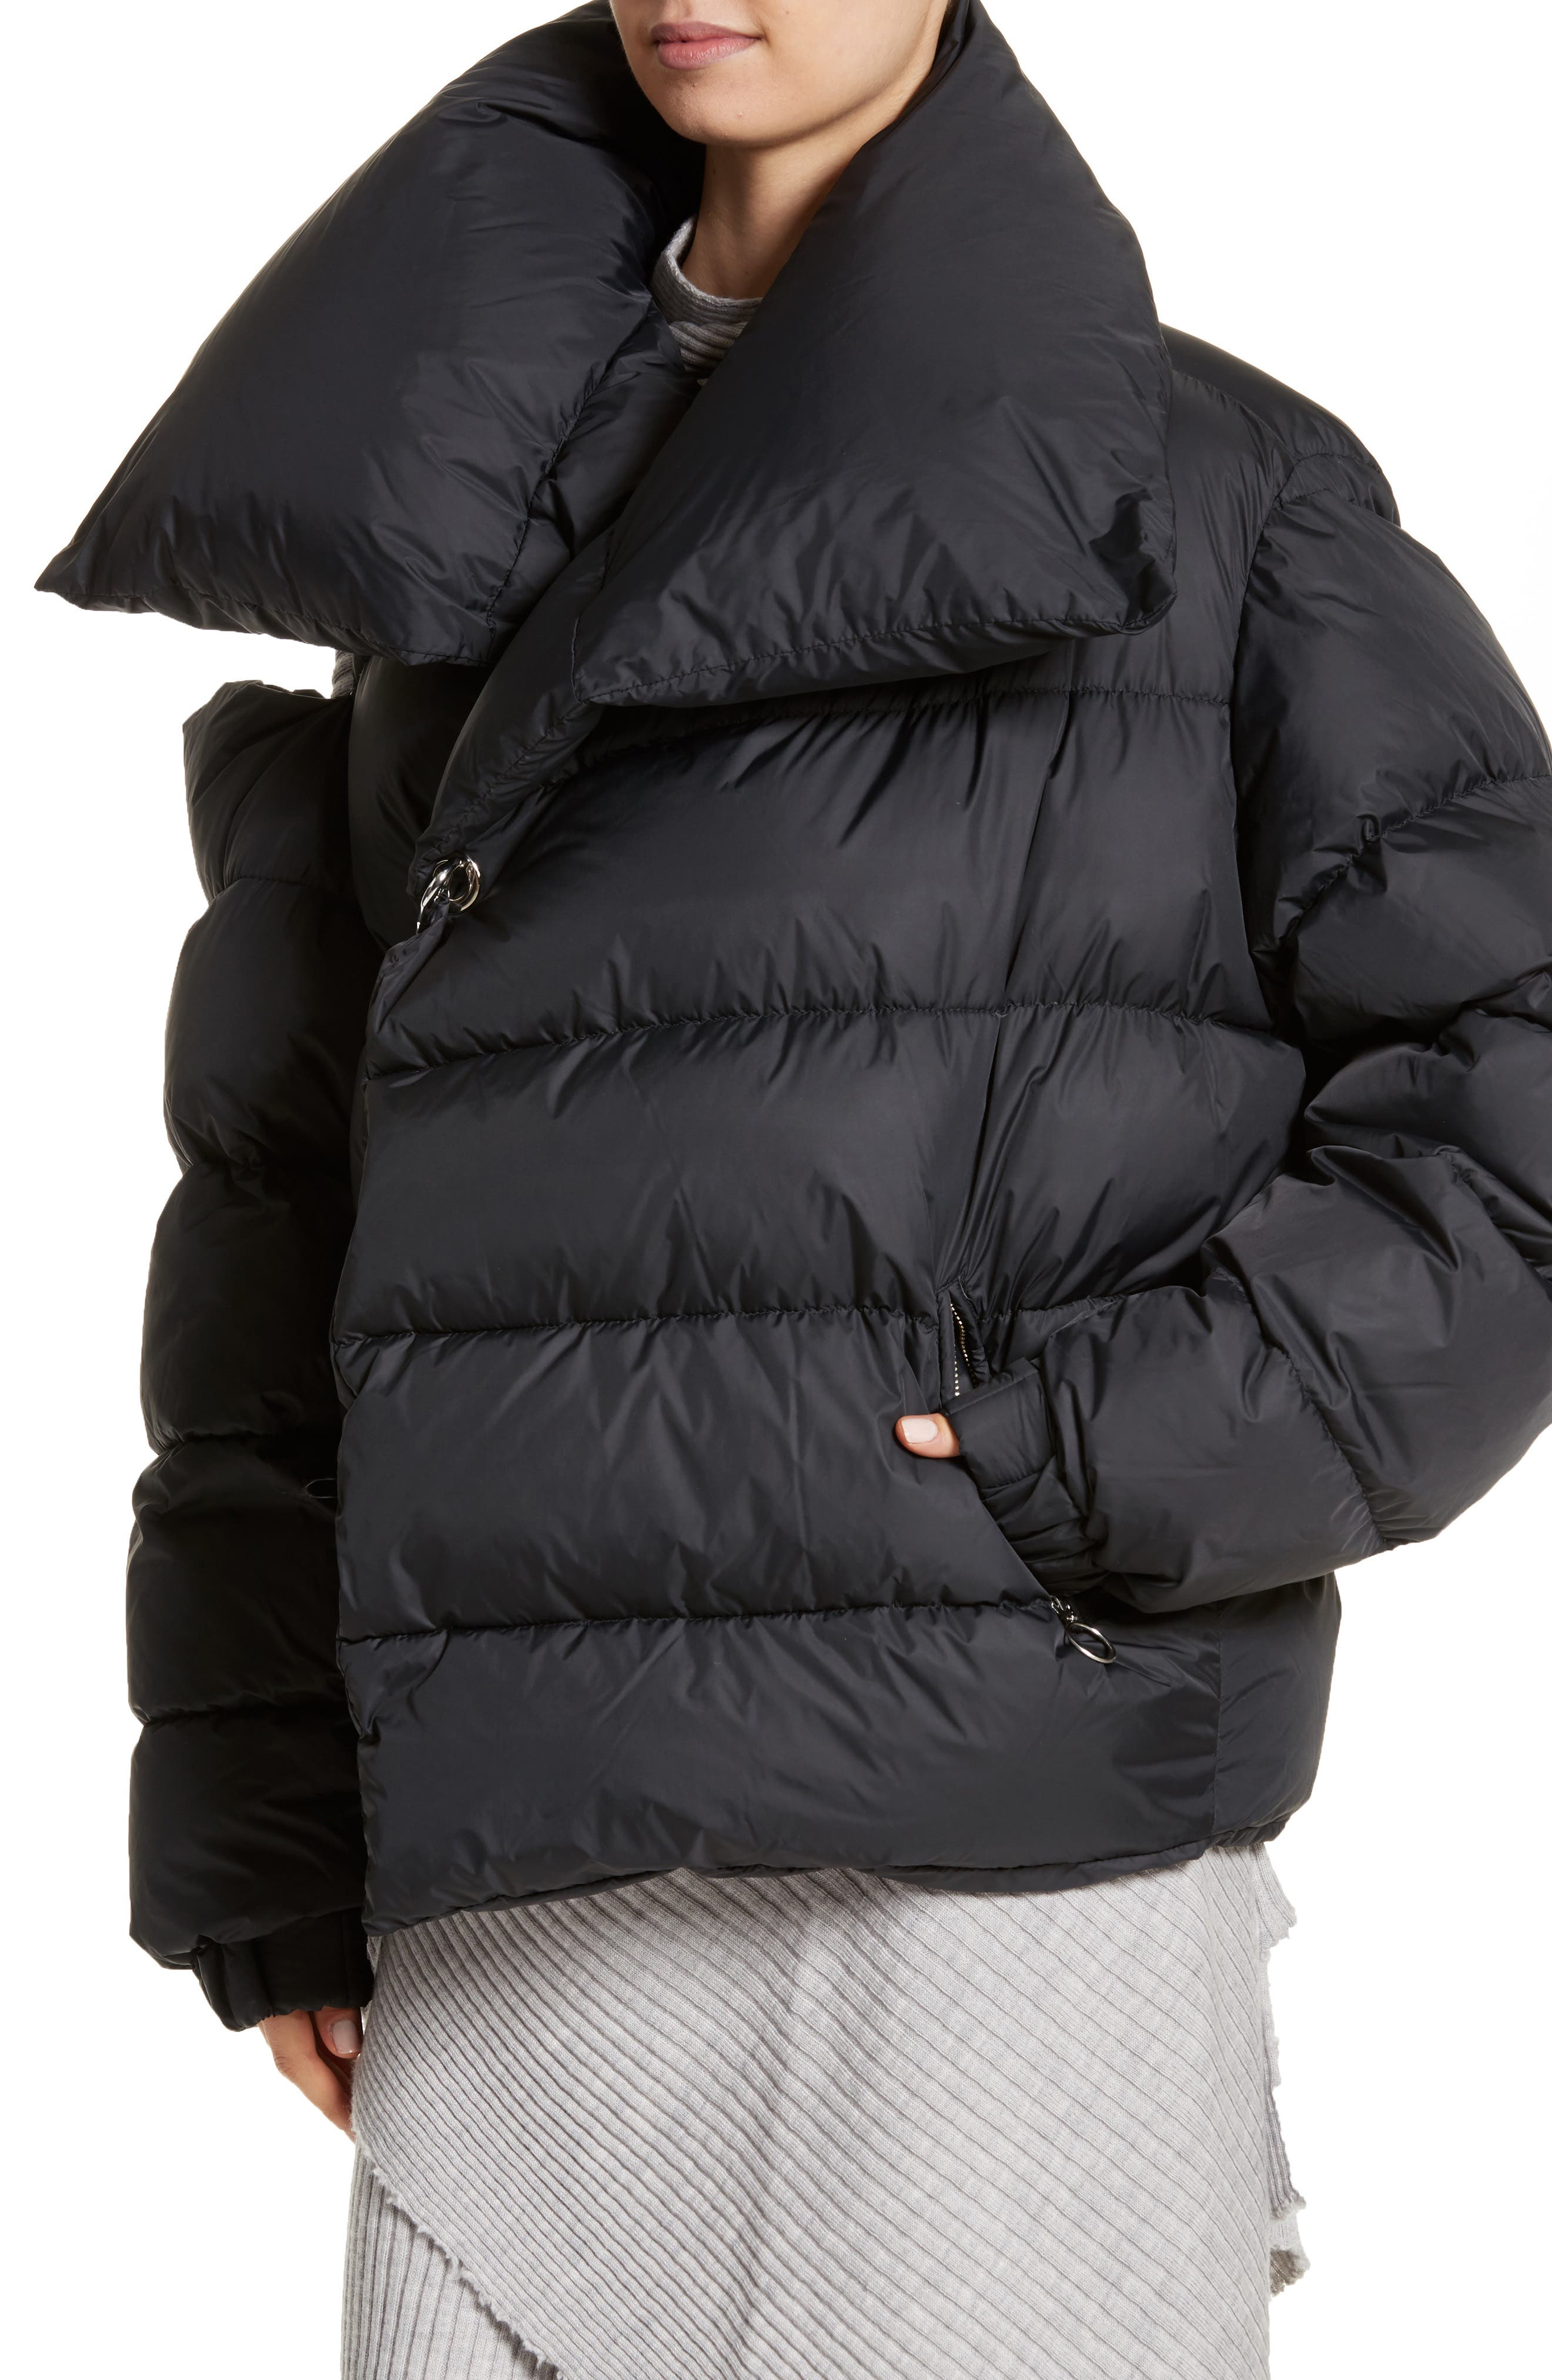 Marques'Almeida Asymmetrical Down Puffer Coat with Safety Pin Closure,                             Alternate thumbnail 4, color,                             001